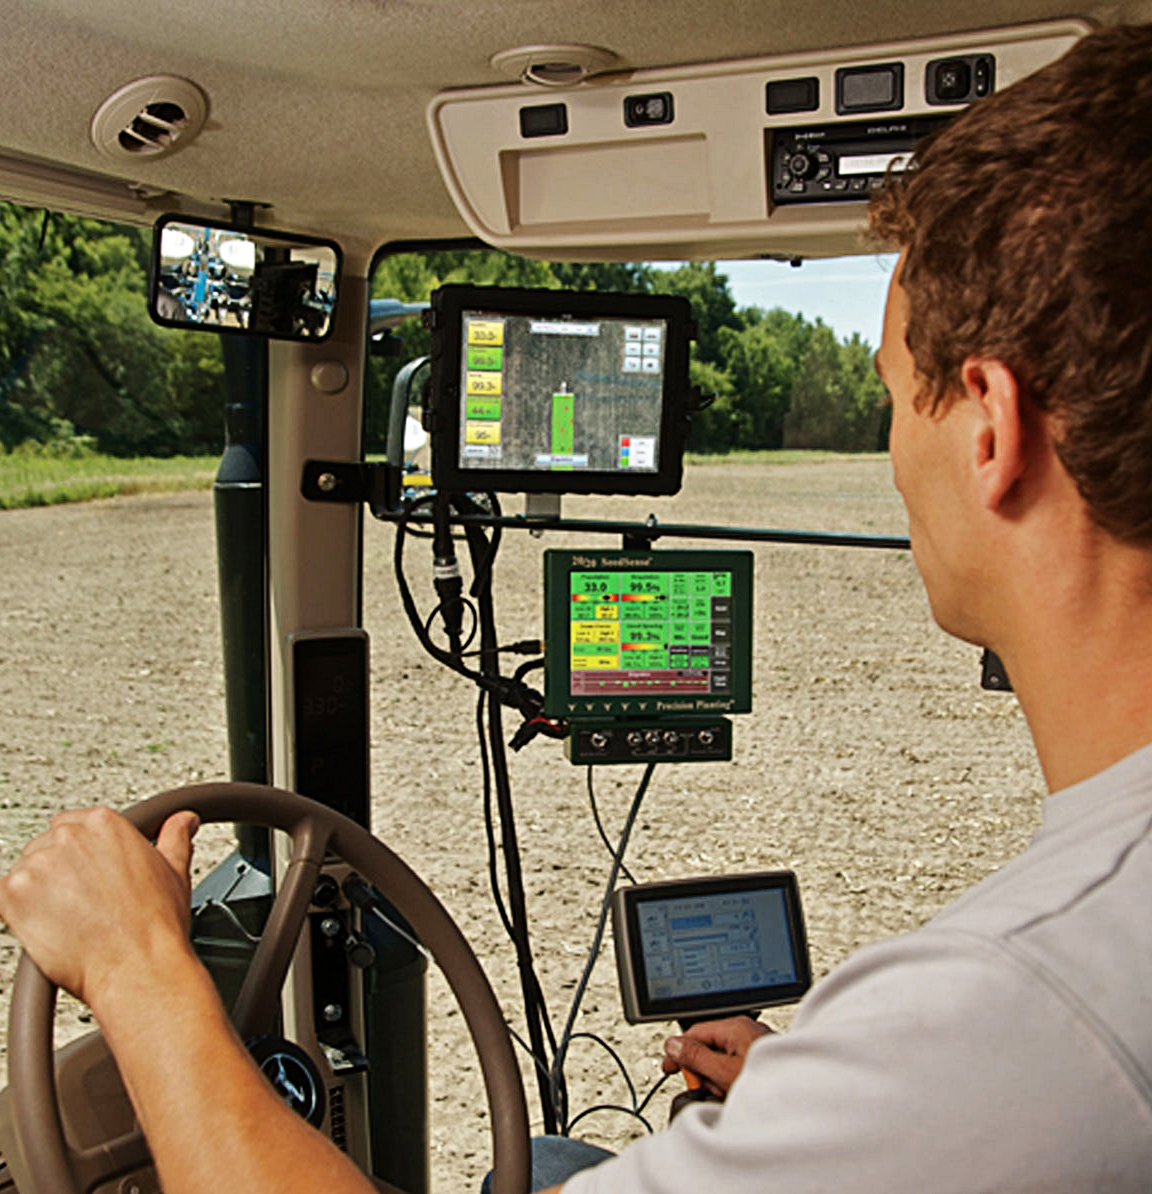 EQUIPMENT_Monitors_Farmer-in-Cab_LR.jpg